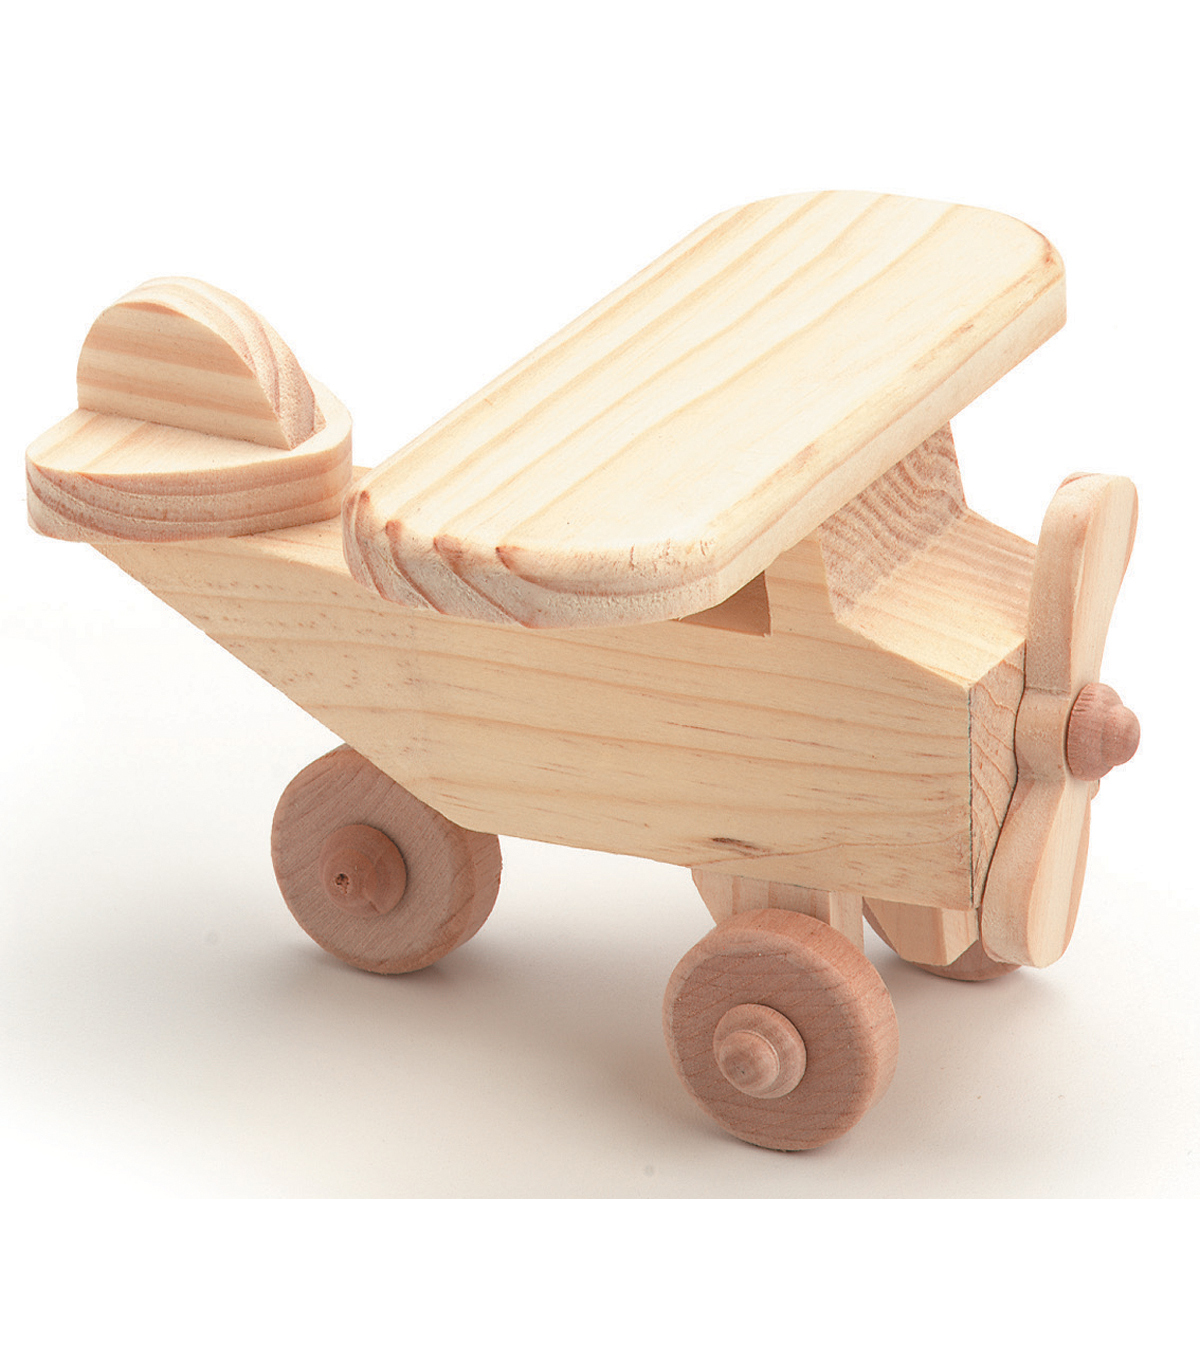 Wooden Airplane Craft Kits